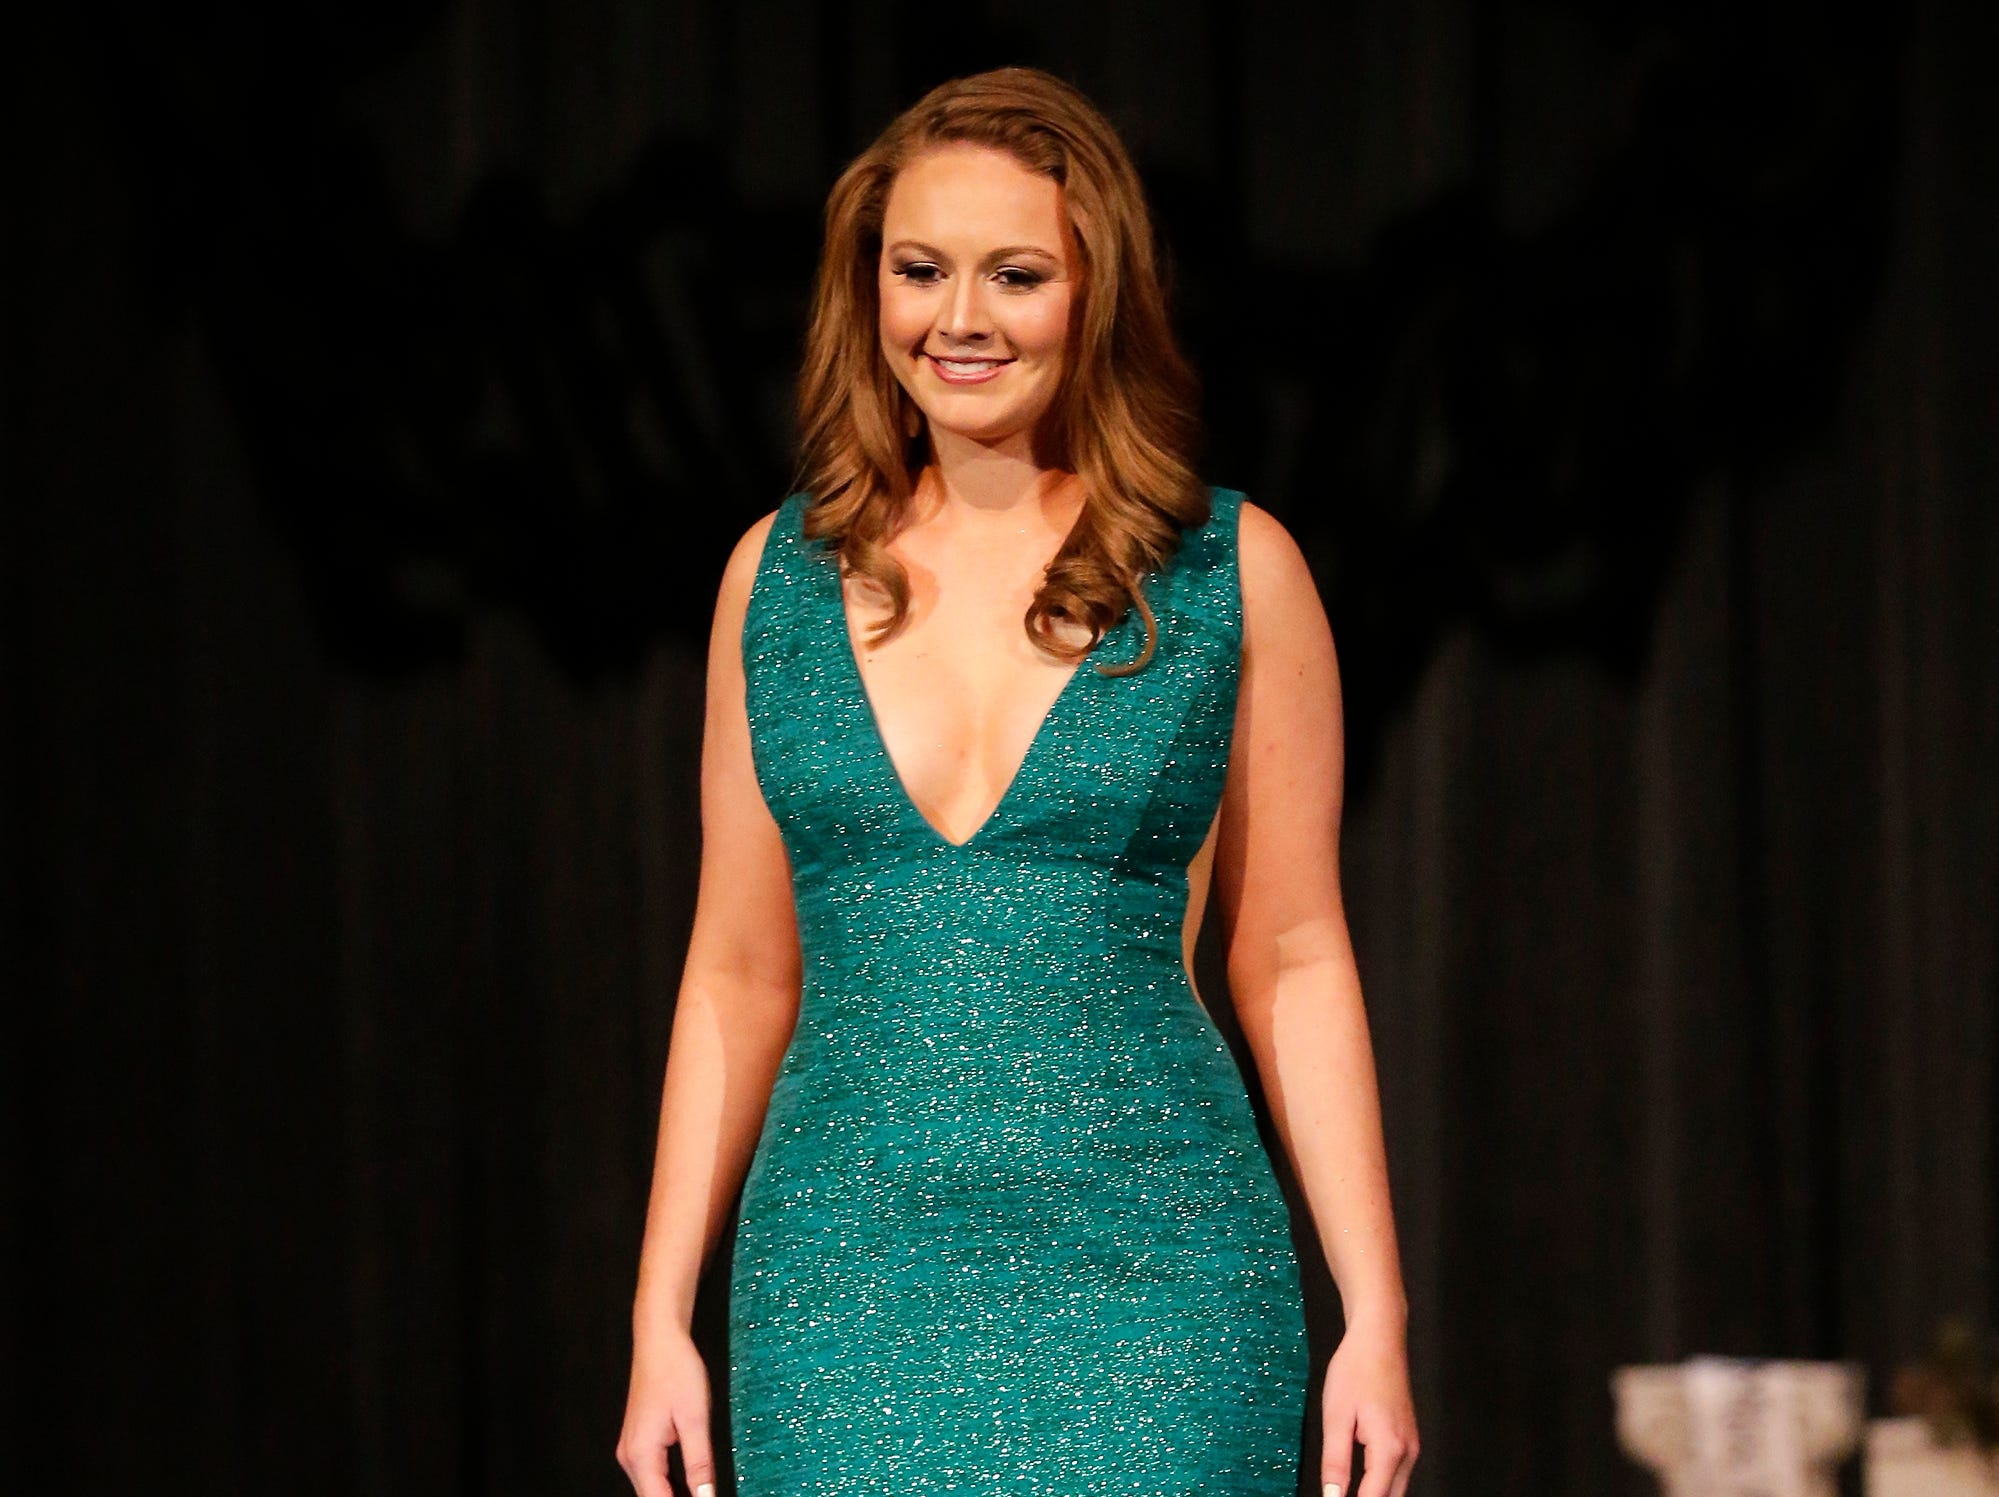 Miss Wisconsin Central contestant Kristie Dantuma participates in the evening wear portion of the Miss Fond du Lac, Miss Wisconsin Central and Miss Fond du Lac's Outstanding Teen 2019 scholarship competitions Saturday, March 9, 2019 at the Goodrich Little Theater in Fond du Lac, Wis. Doug Raflik/USA TODAY NETWORK-Wisconsin